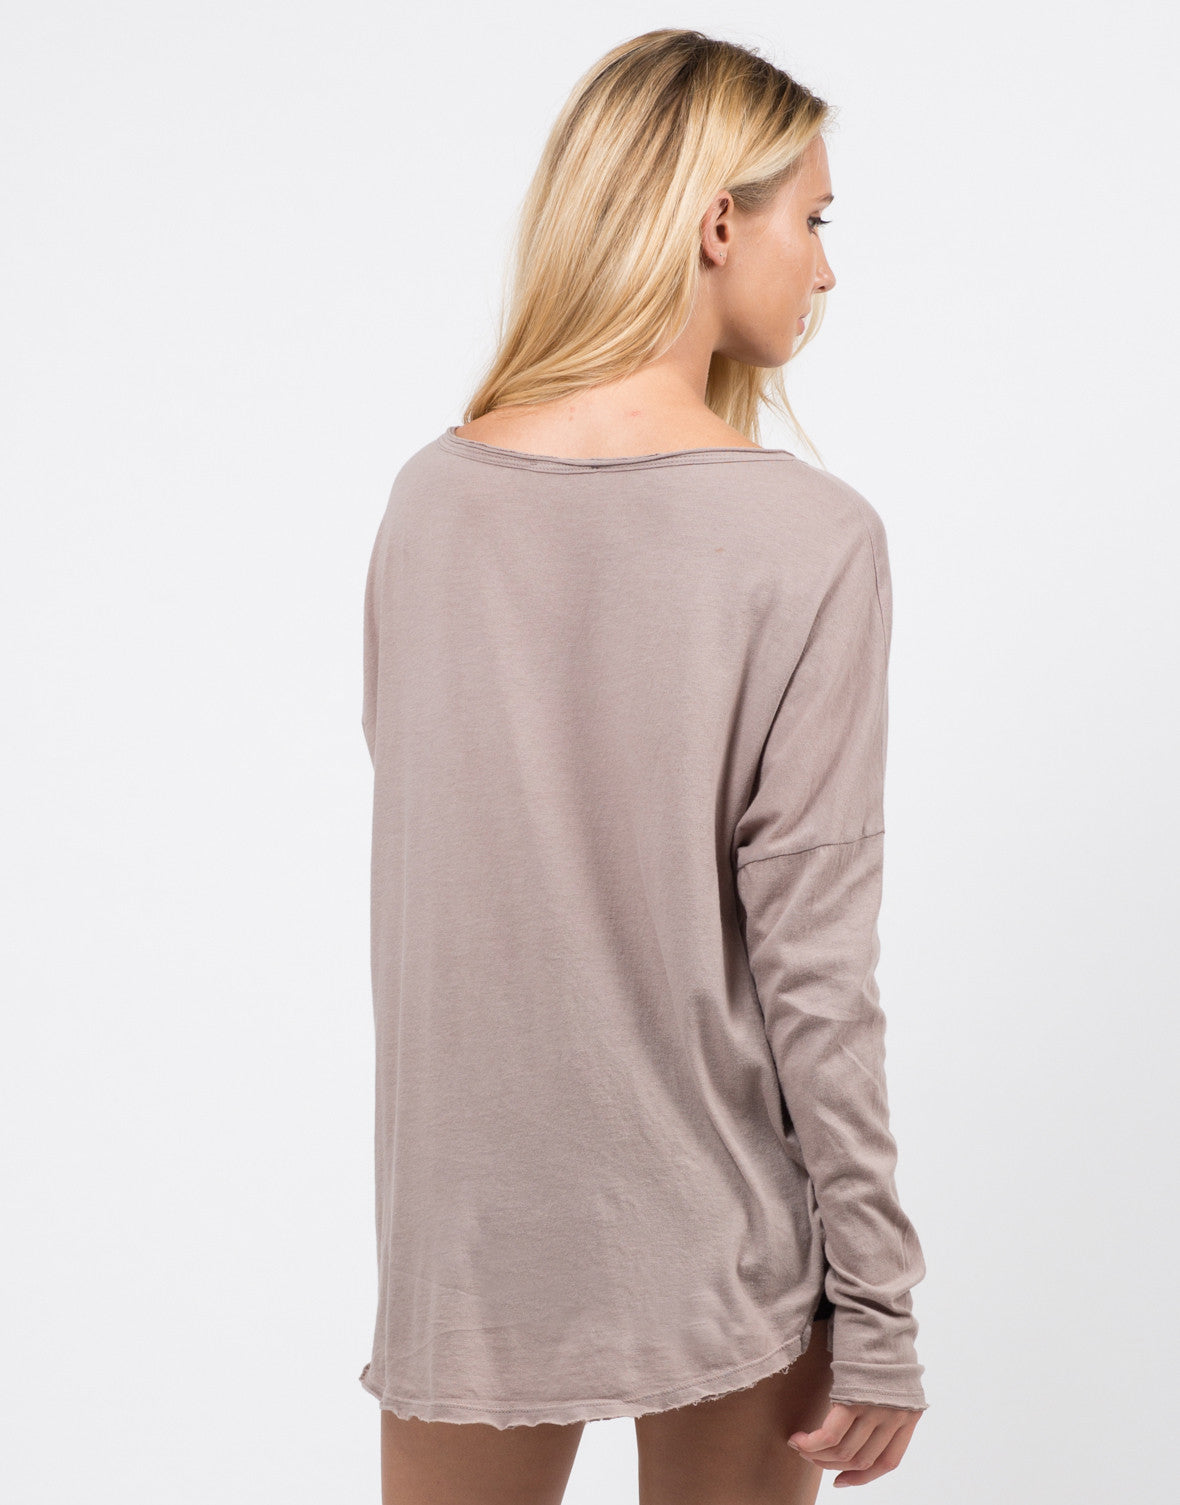 Back View of Loose Long Sleeve Basic Tee